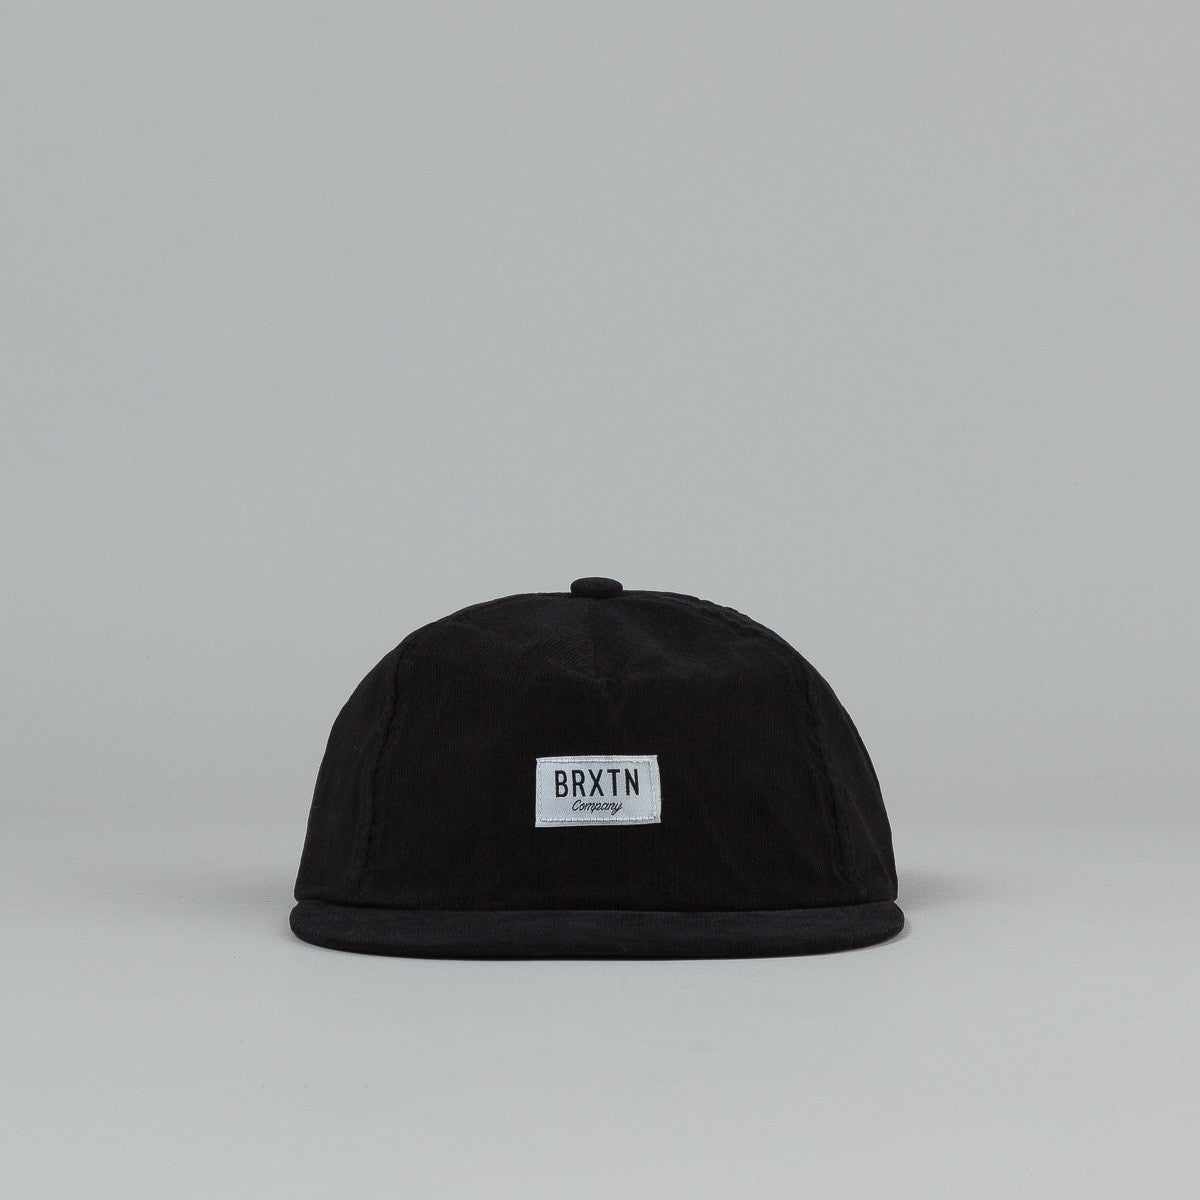 Brixton Hoover Adjustable Cap - Black